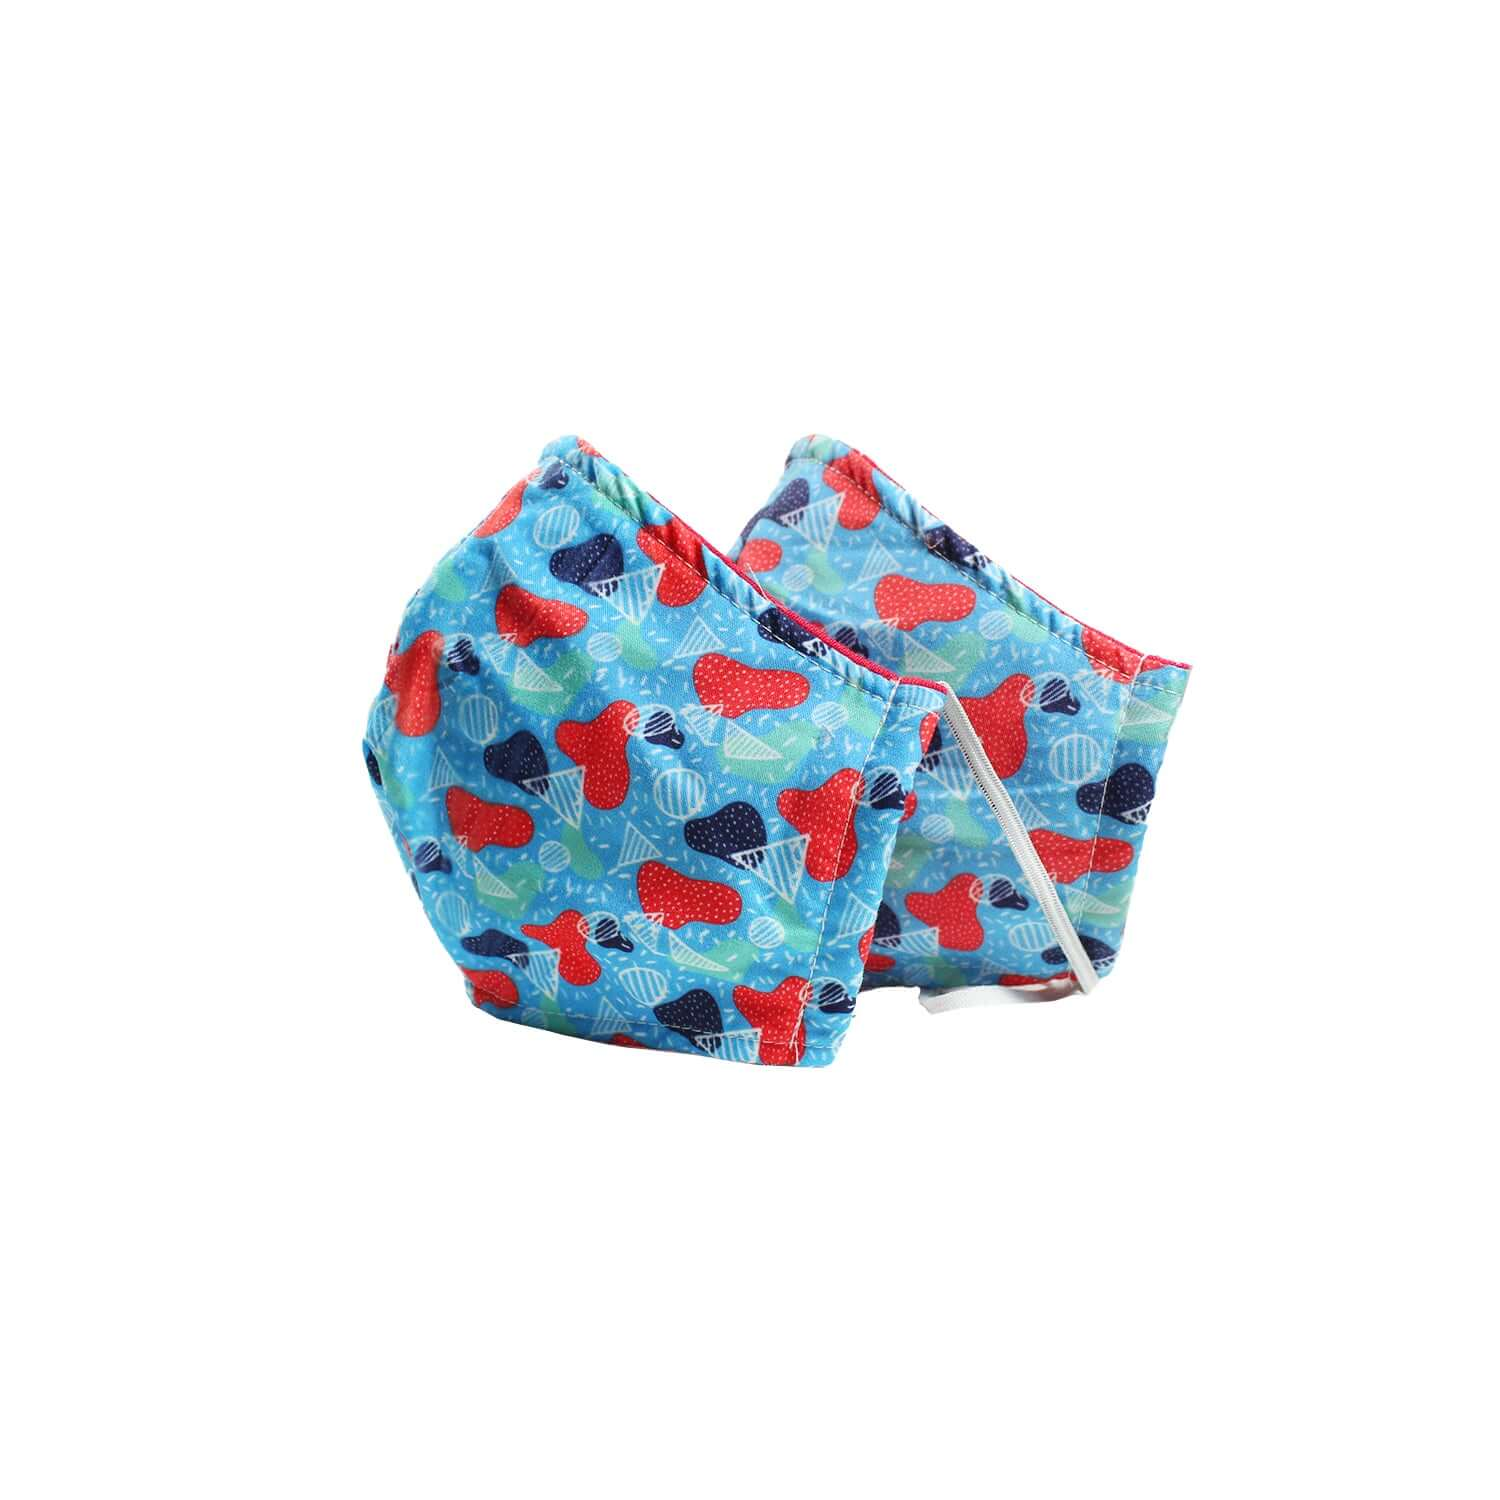 GOLF BLUE FASE MASK PACK OF 2 - Clorofila Sea Wear